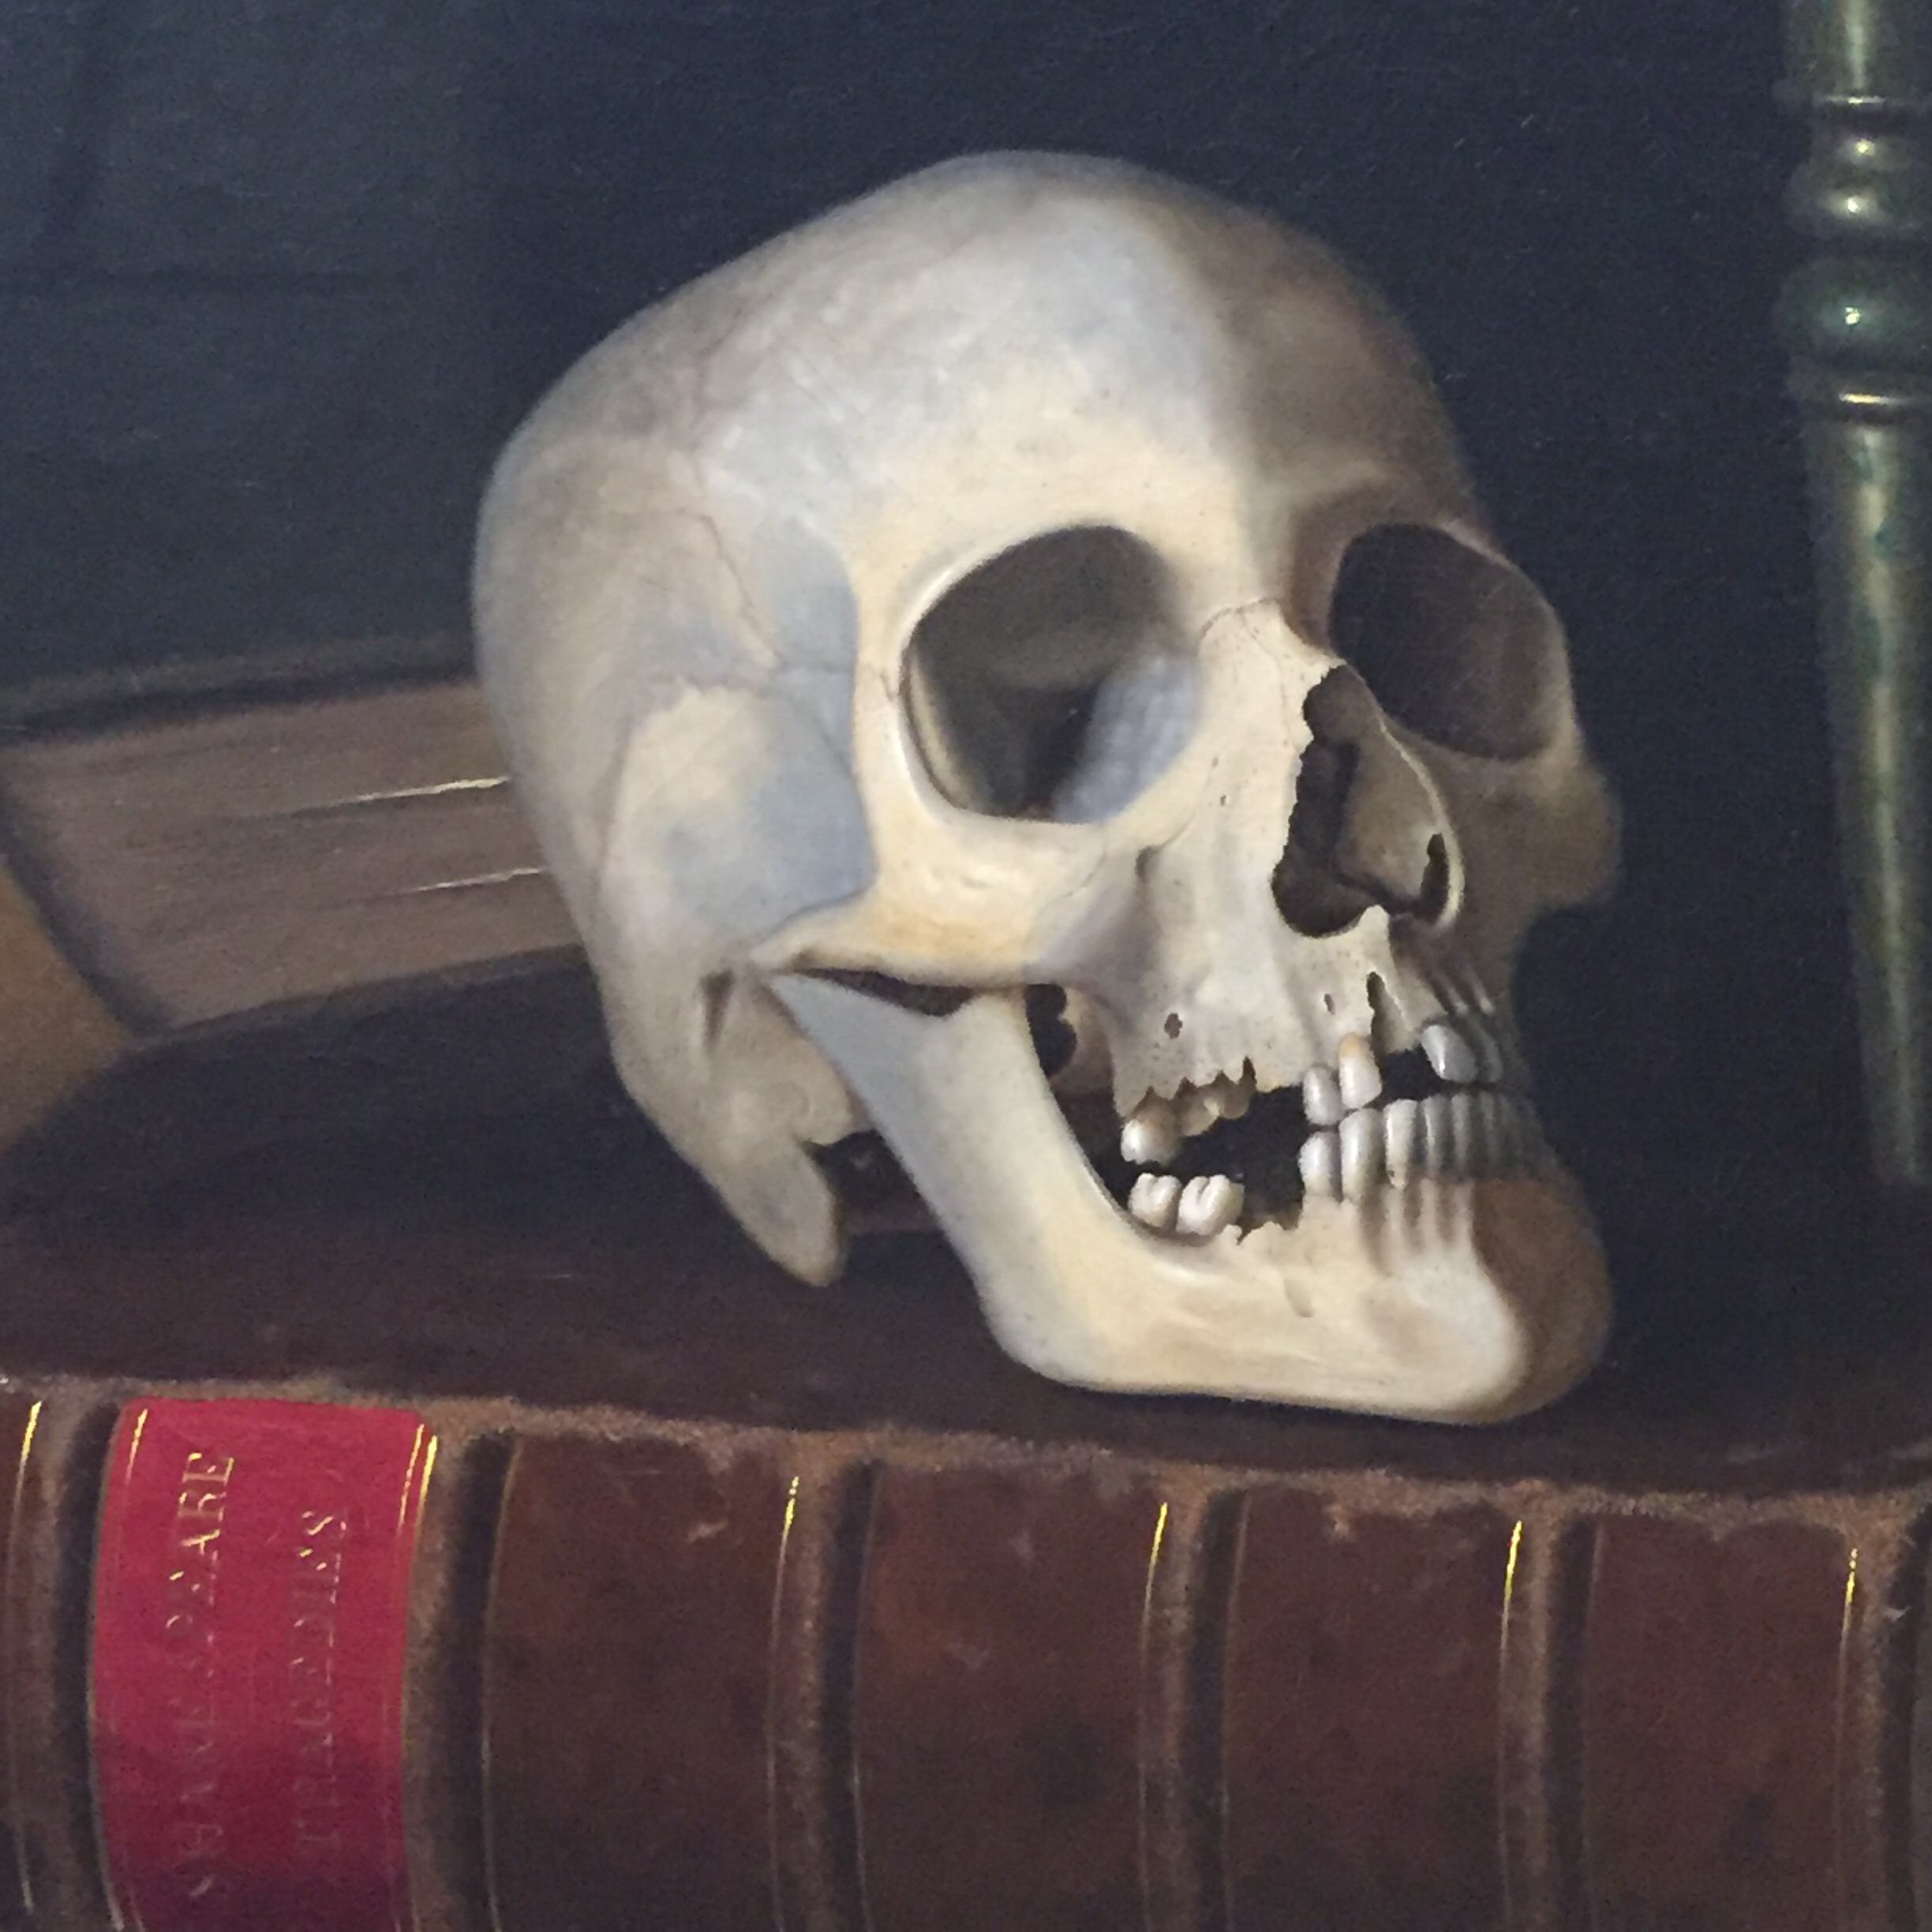 Skull indicating time is up